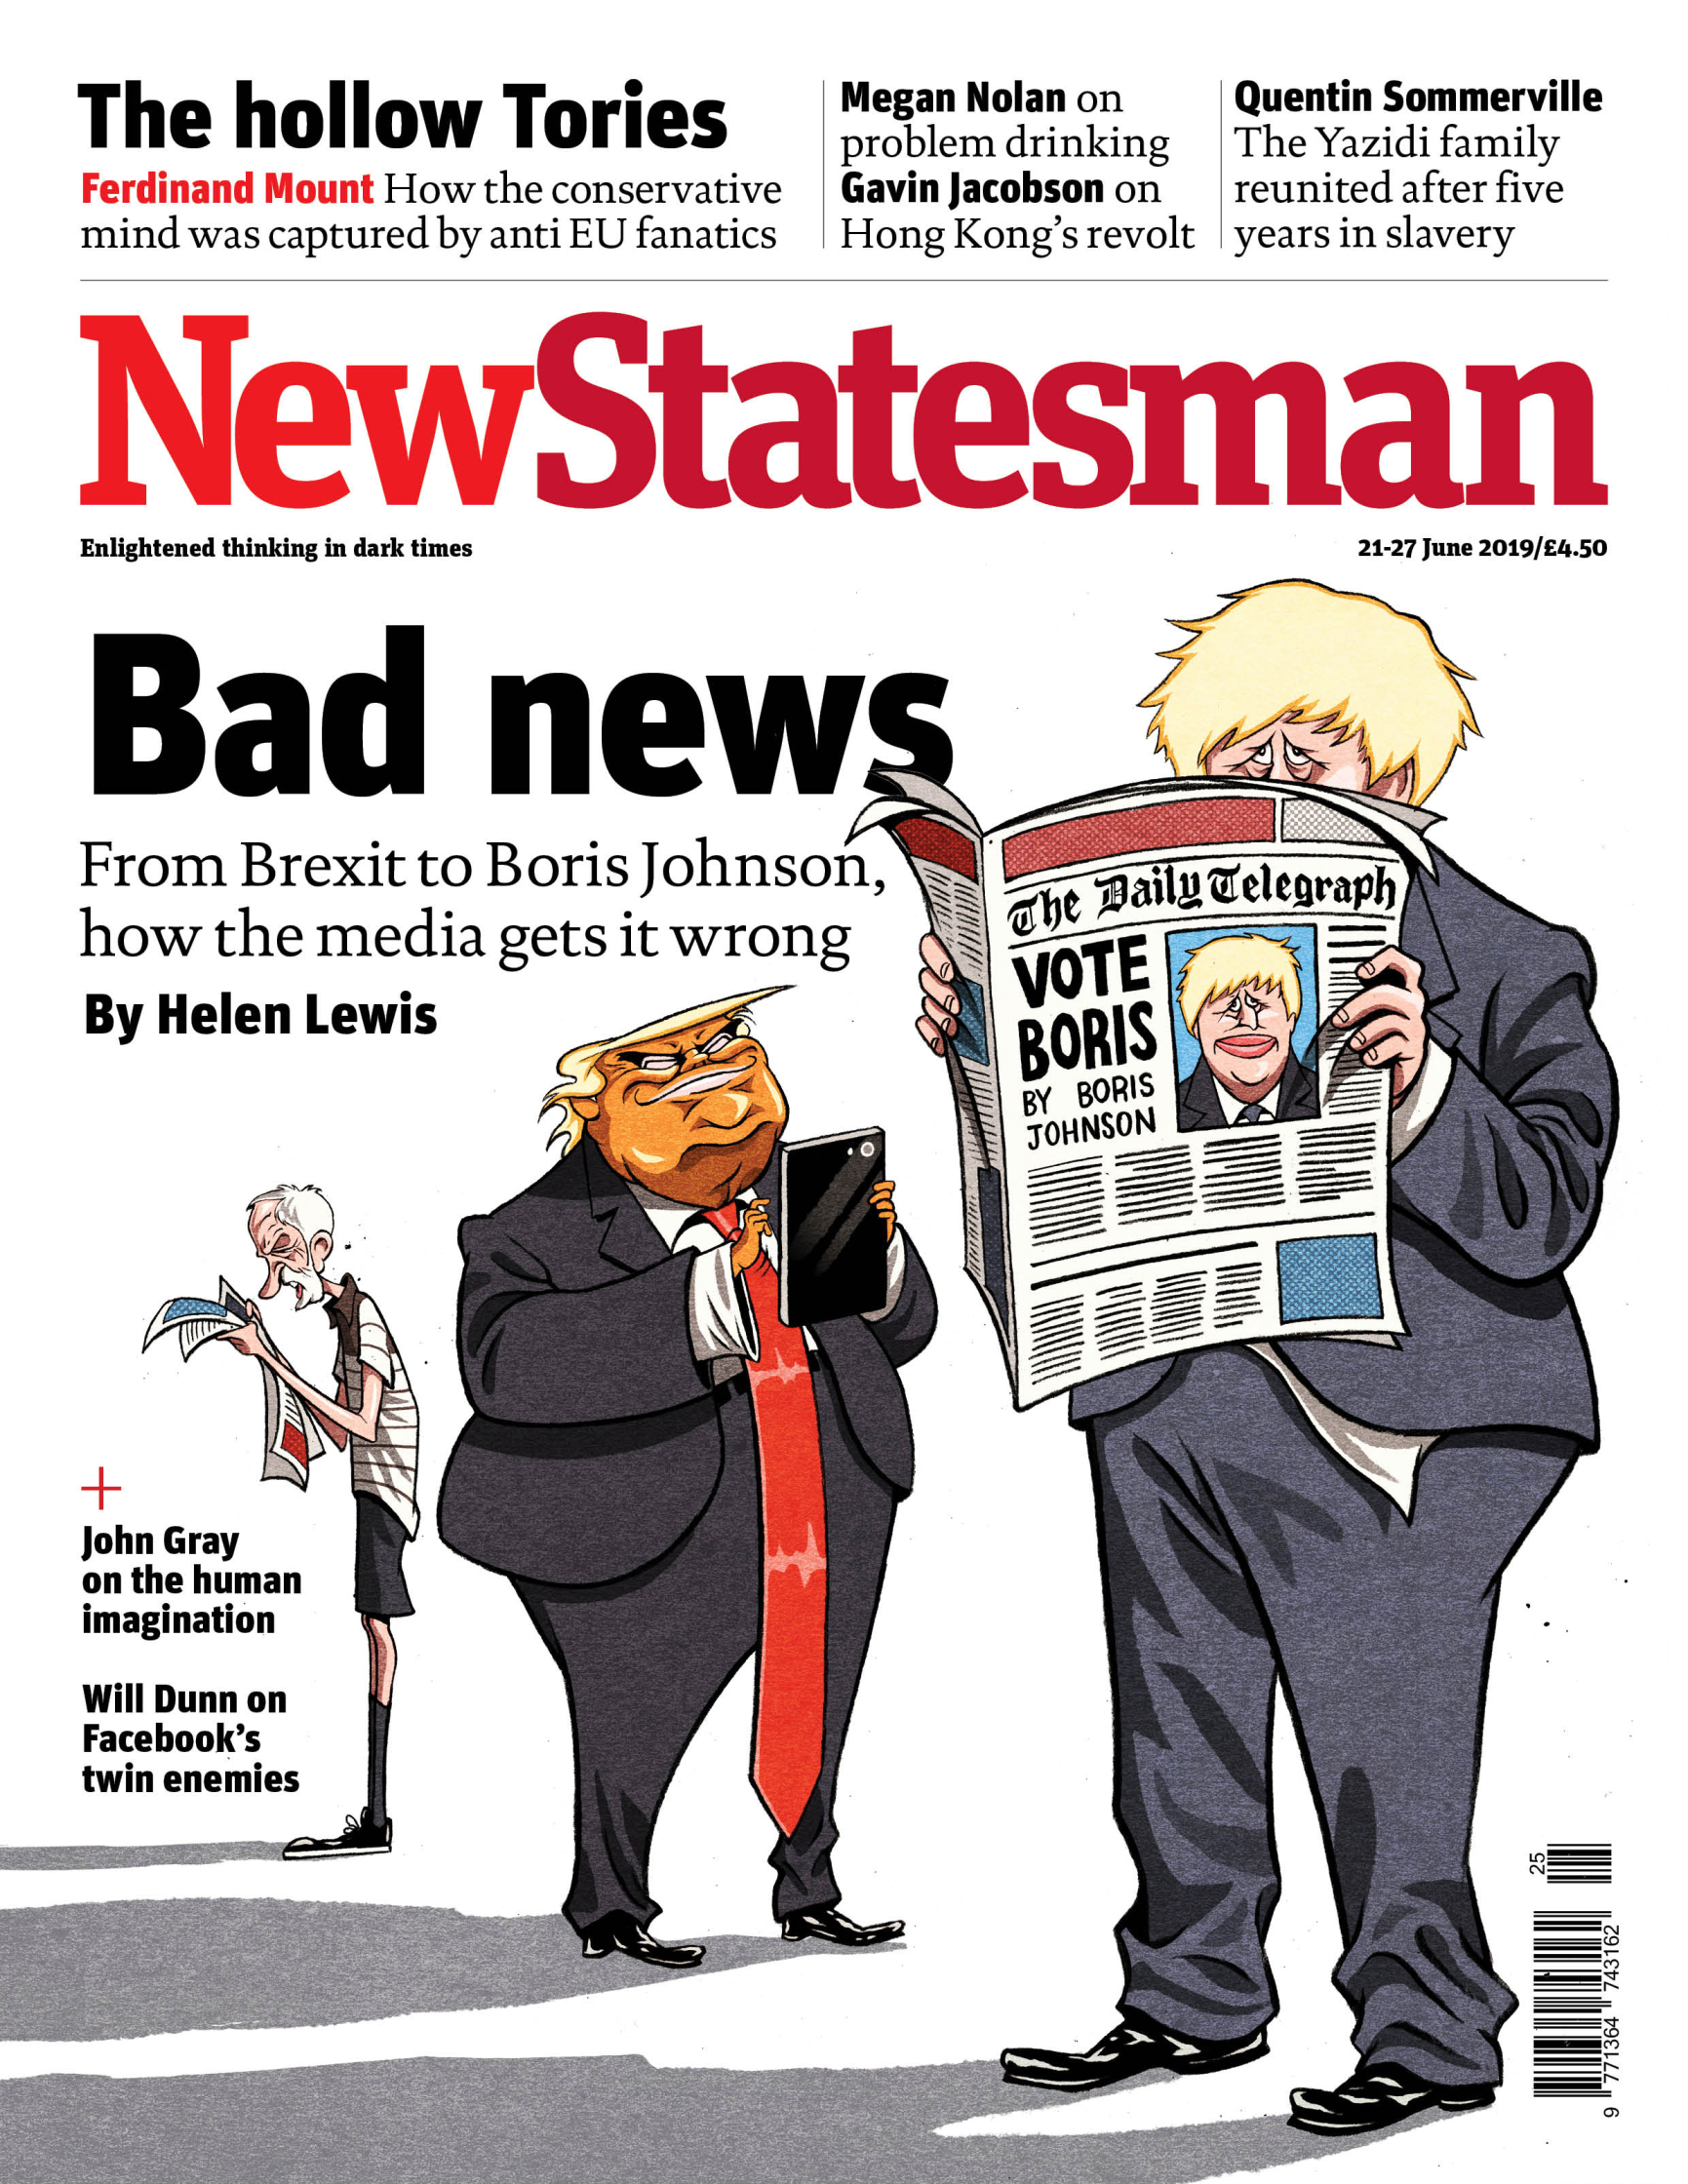 New Statesman � 21-27 June 2019.jpg